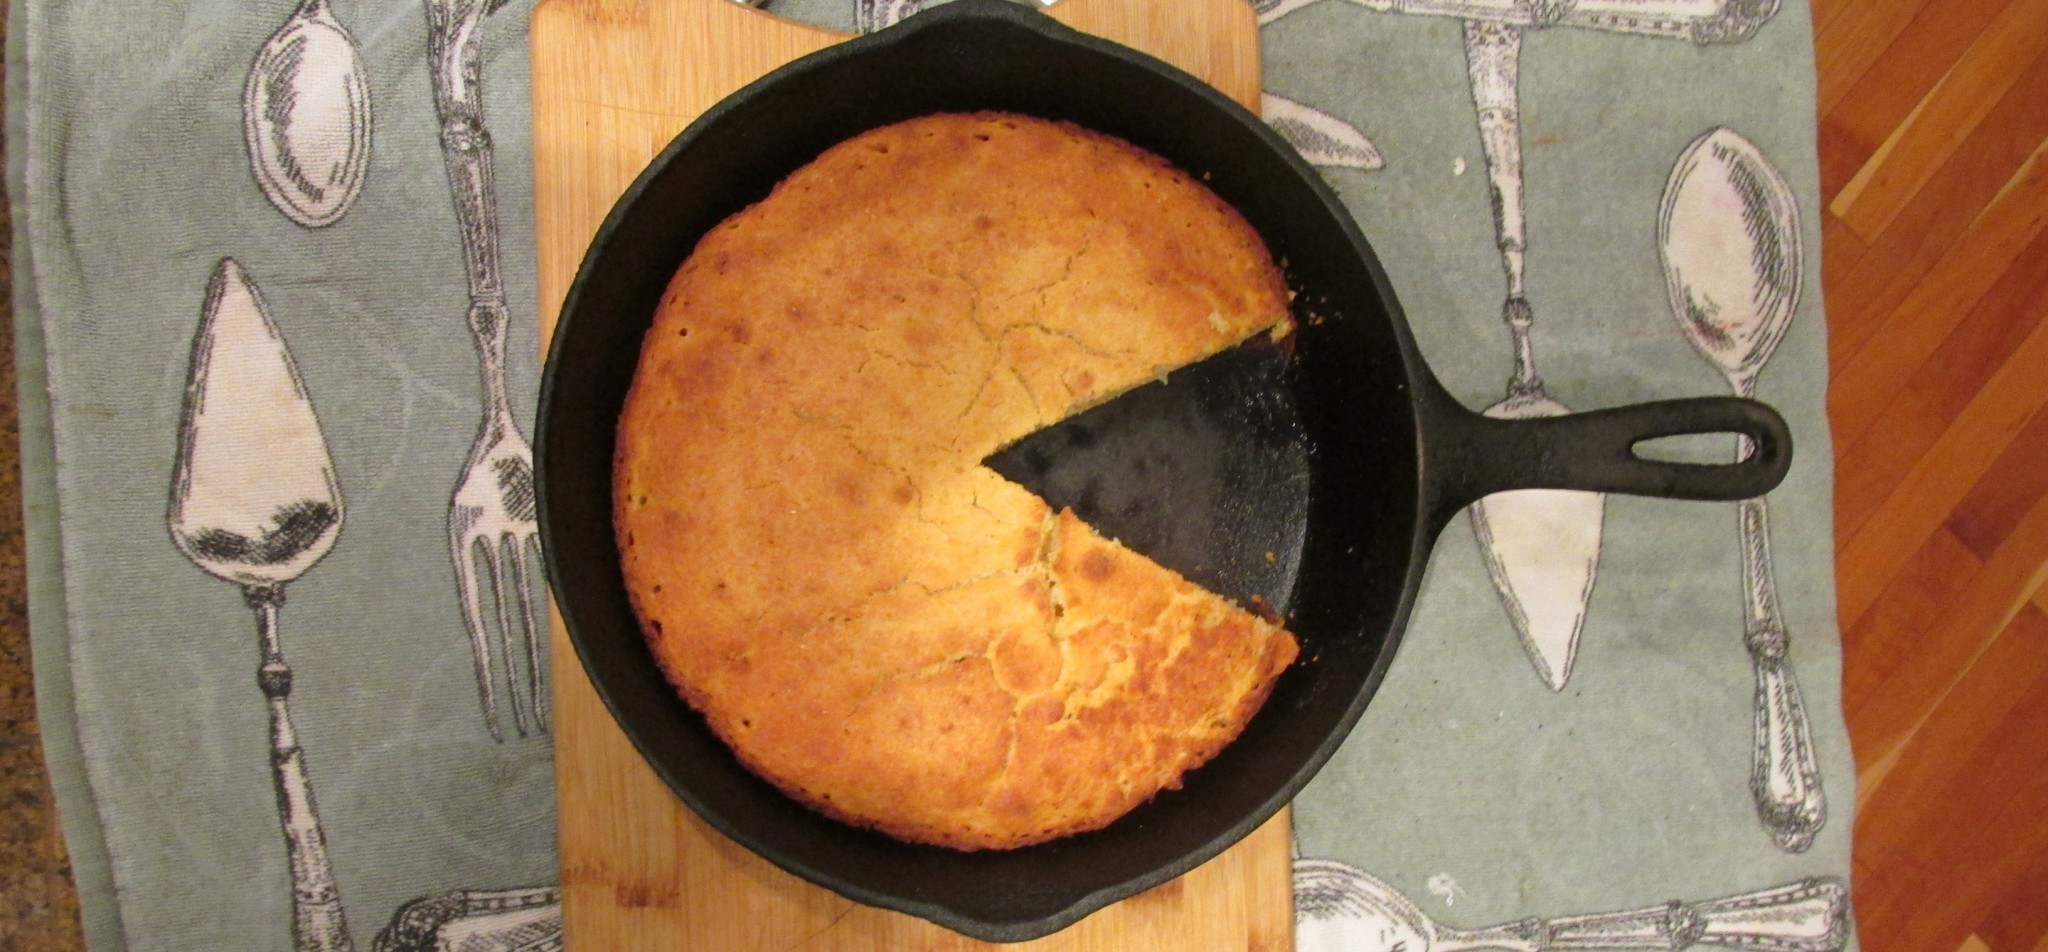 Recipes From Our Readers: Skillet Sourdough Cornbread | The American Spectator | USA News and PoliticsThe American Spectator | USA News and Politics